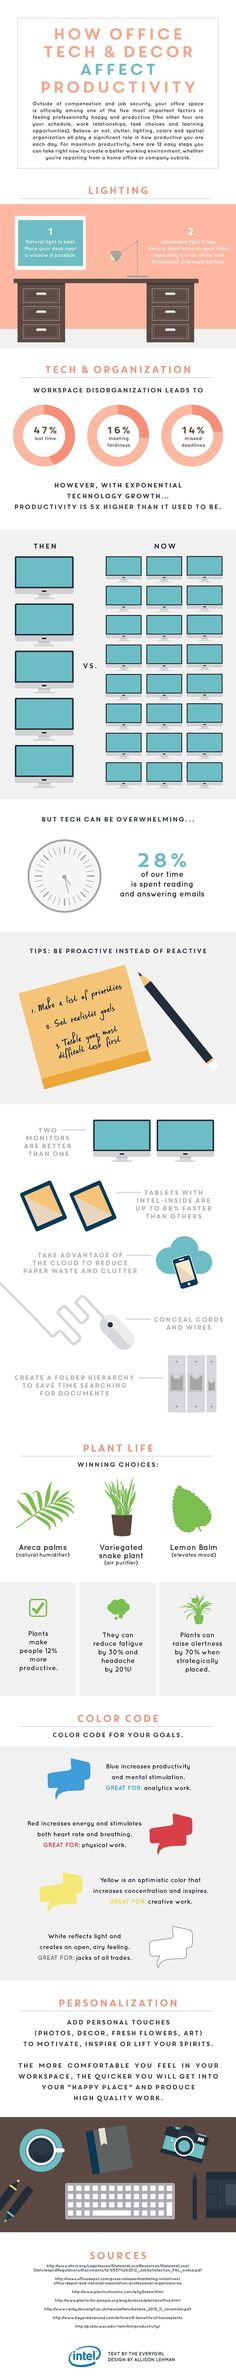 Love this productivity boosters infographic